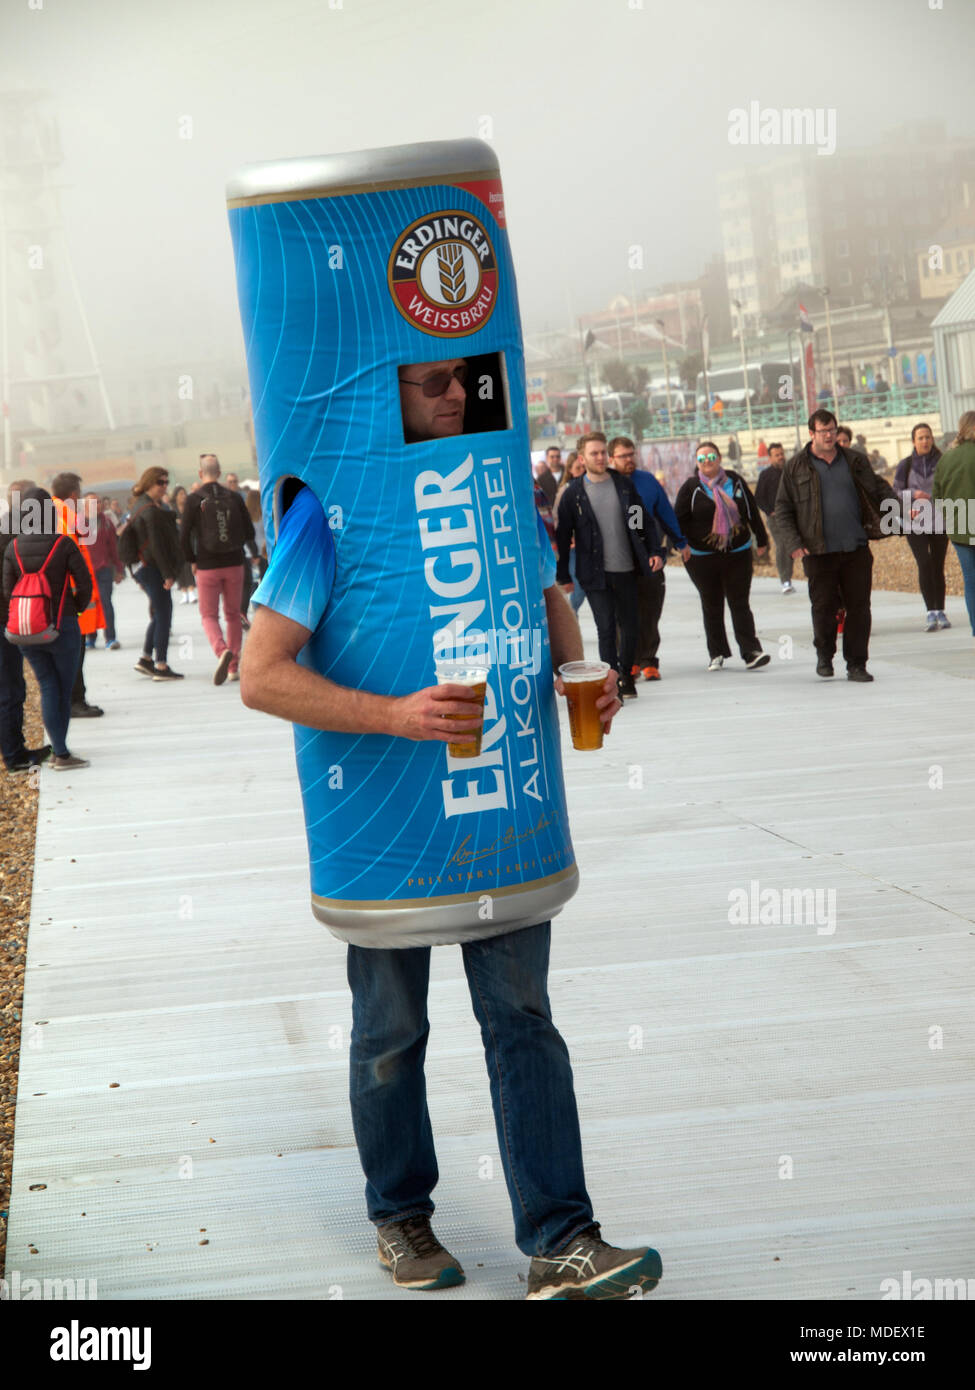 A promotional gimmick for Erdinger non alcoholic beer, on Brighton seafront - Stock Image